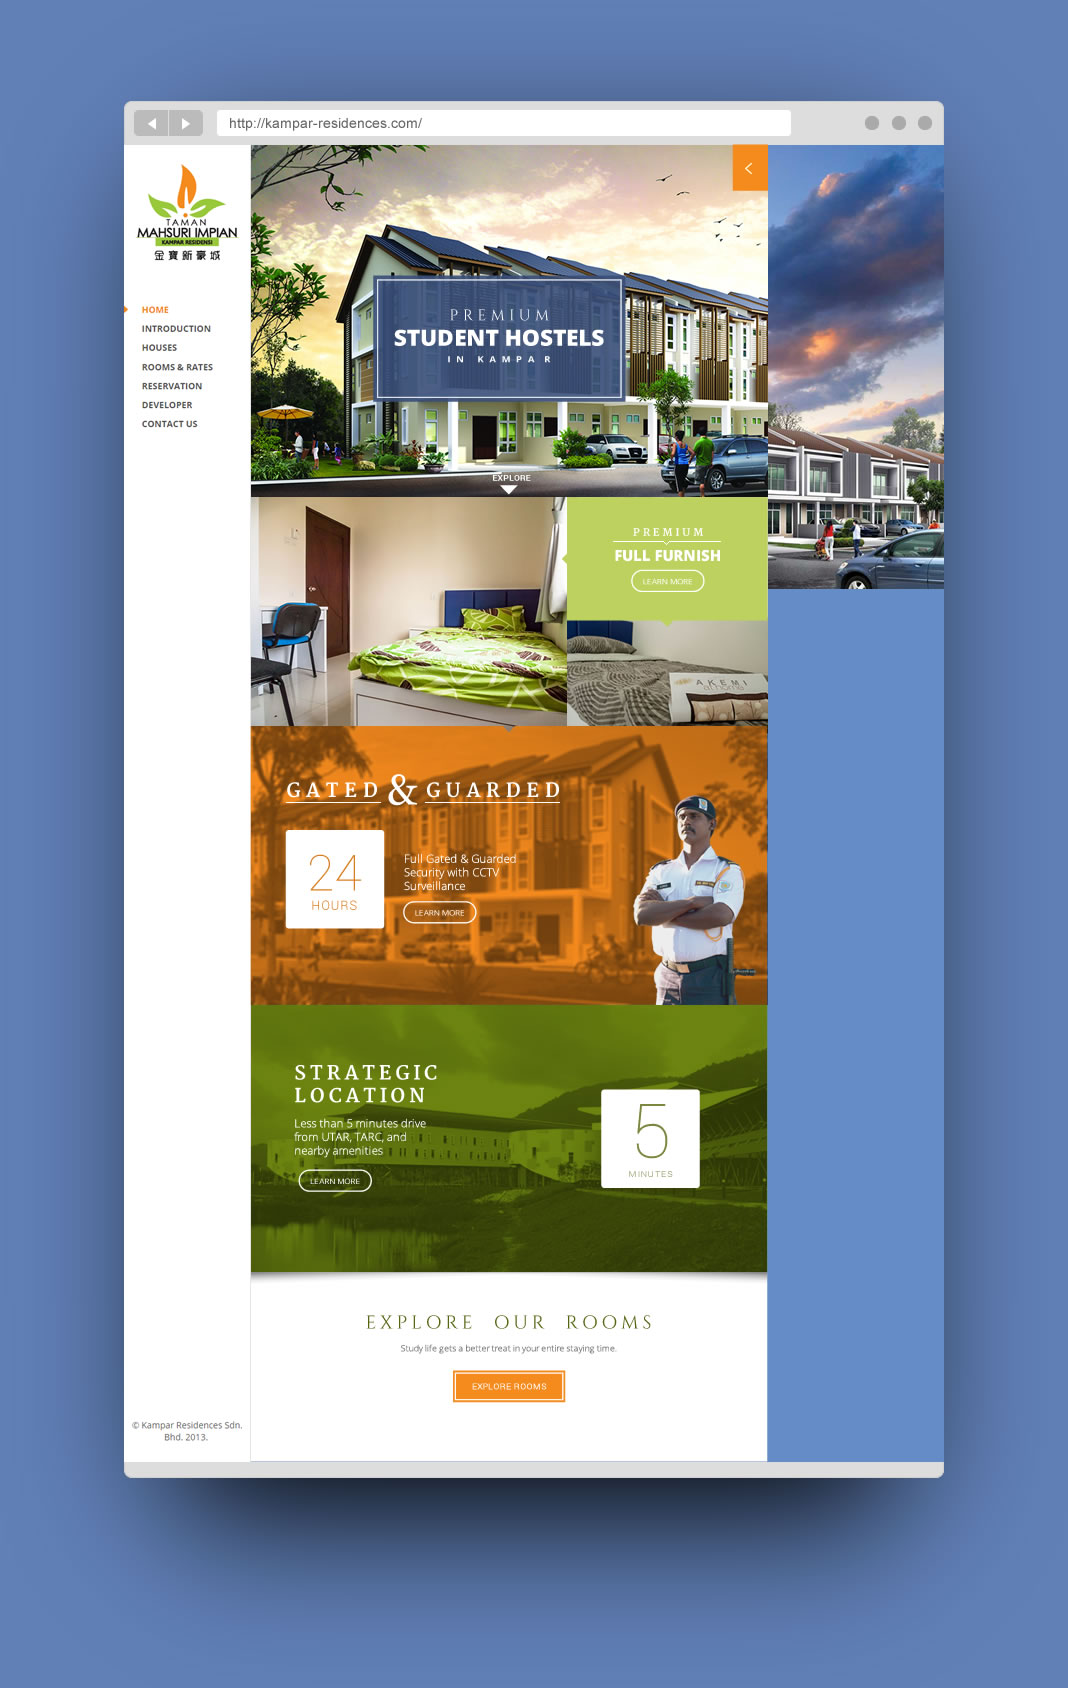 kampar hostel website design